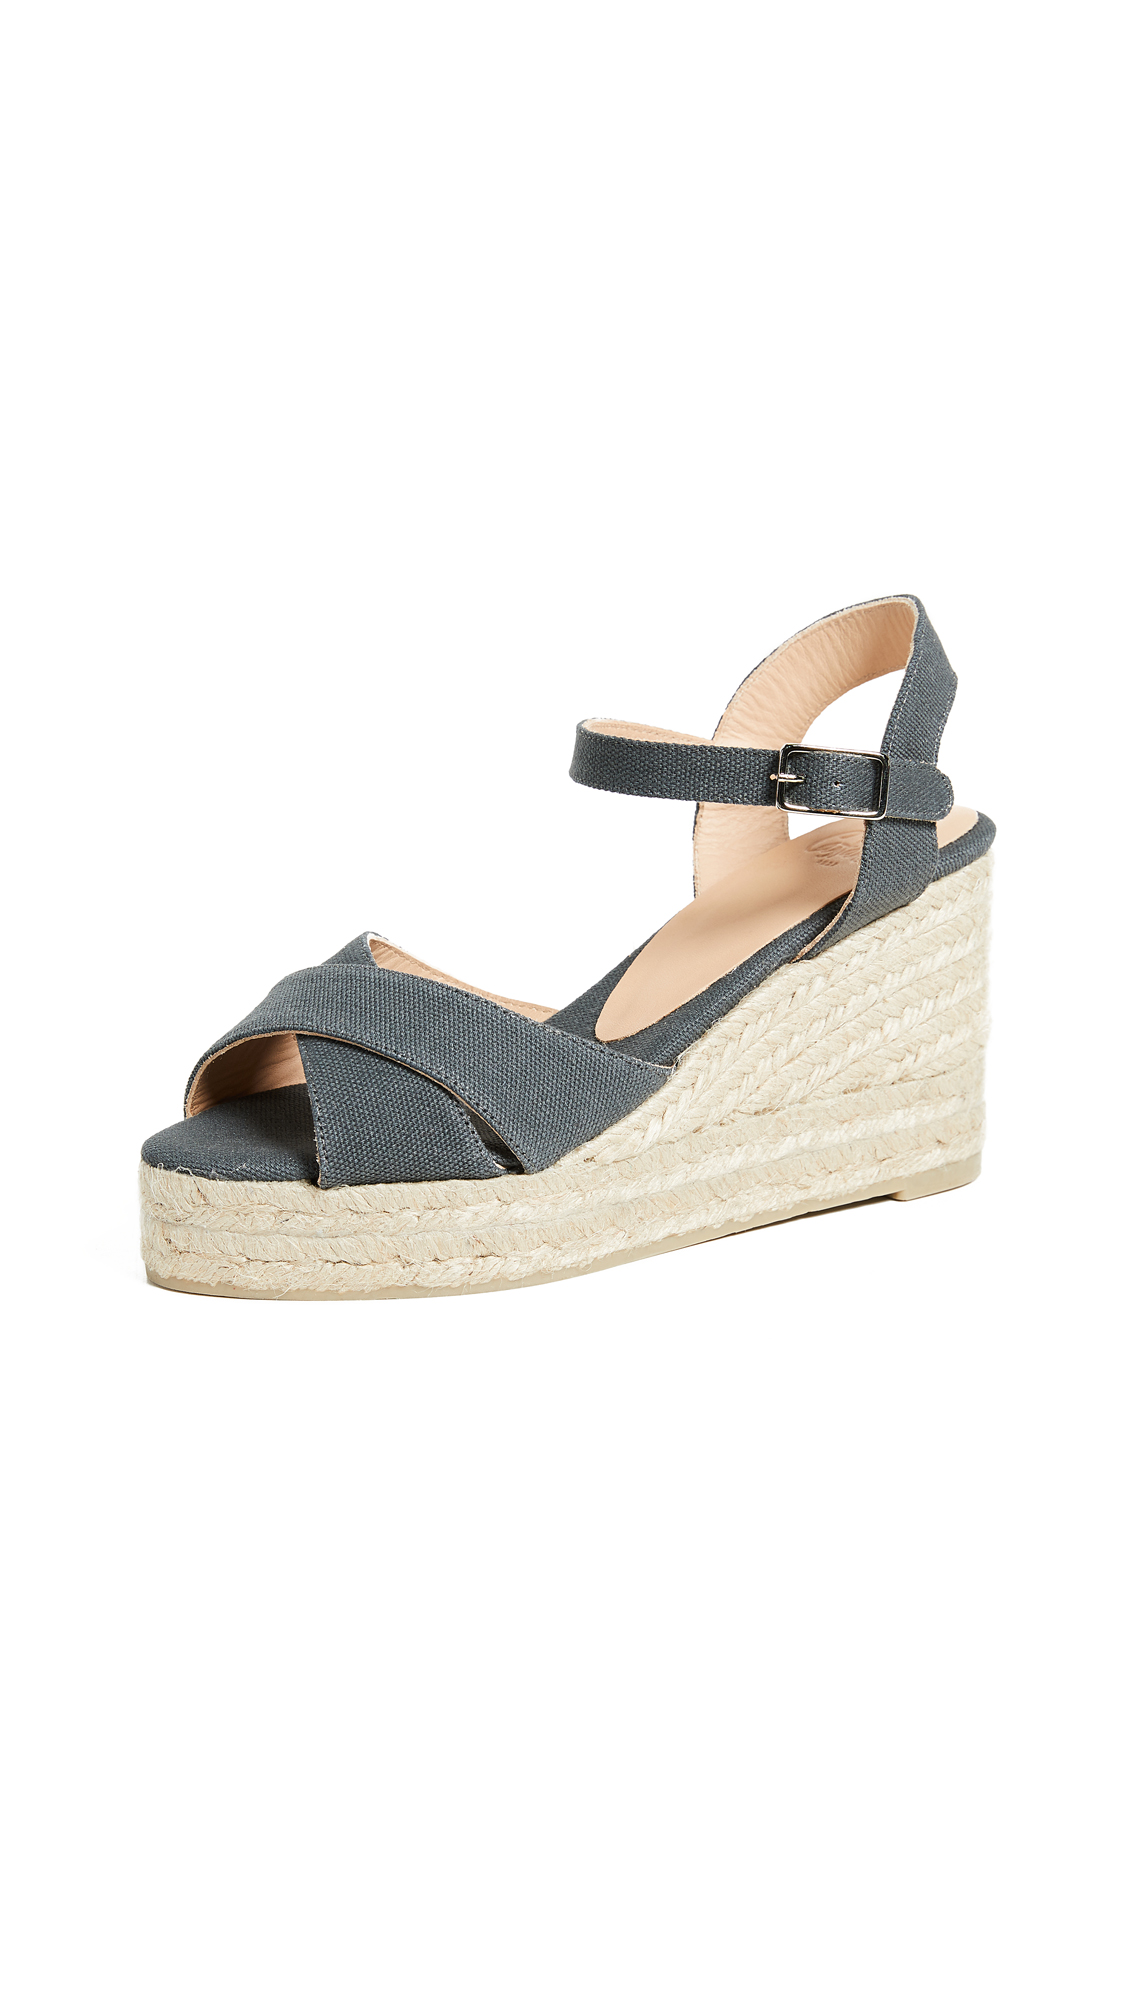 Photo of Castaner Blaudell Crisscross Wedges online shoes sales